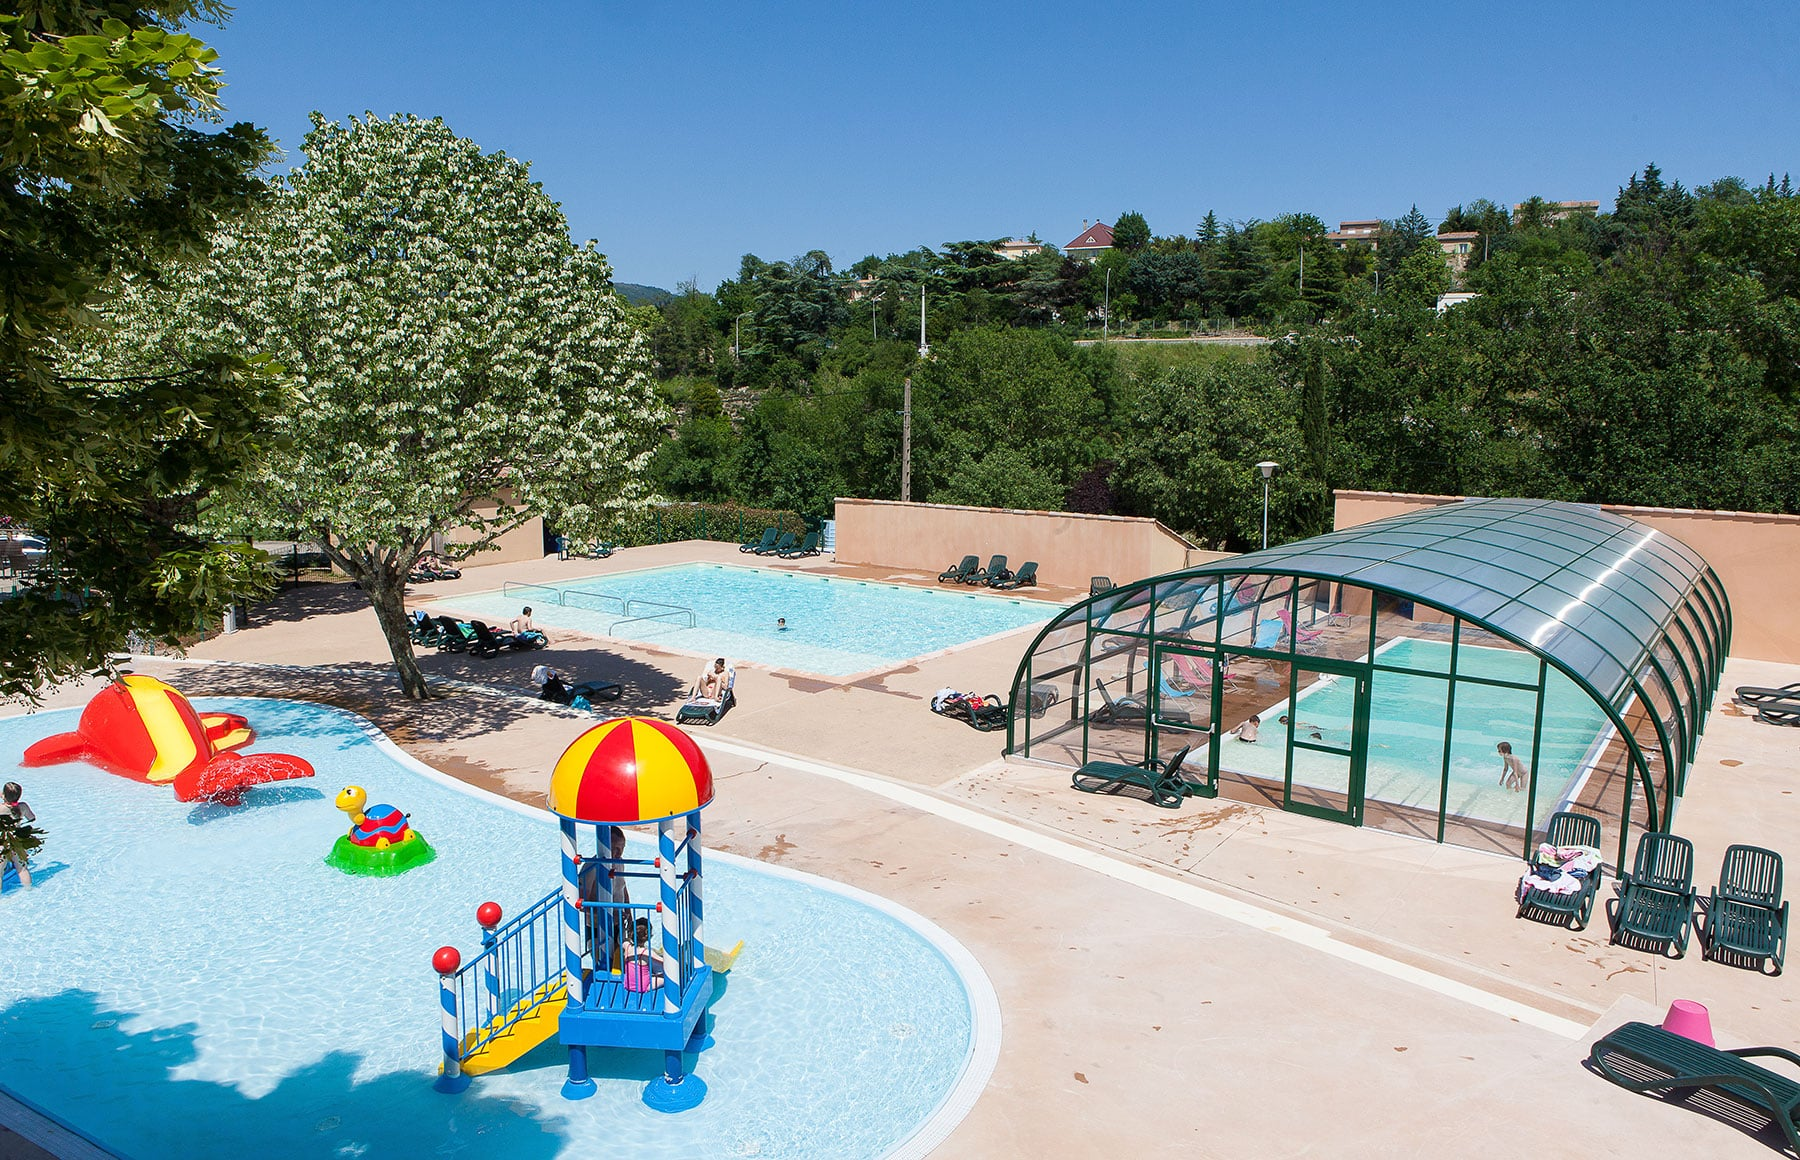 Ardeche camping piscine chauff e et couverte toboggans for Camping piscine